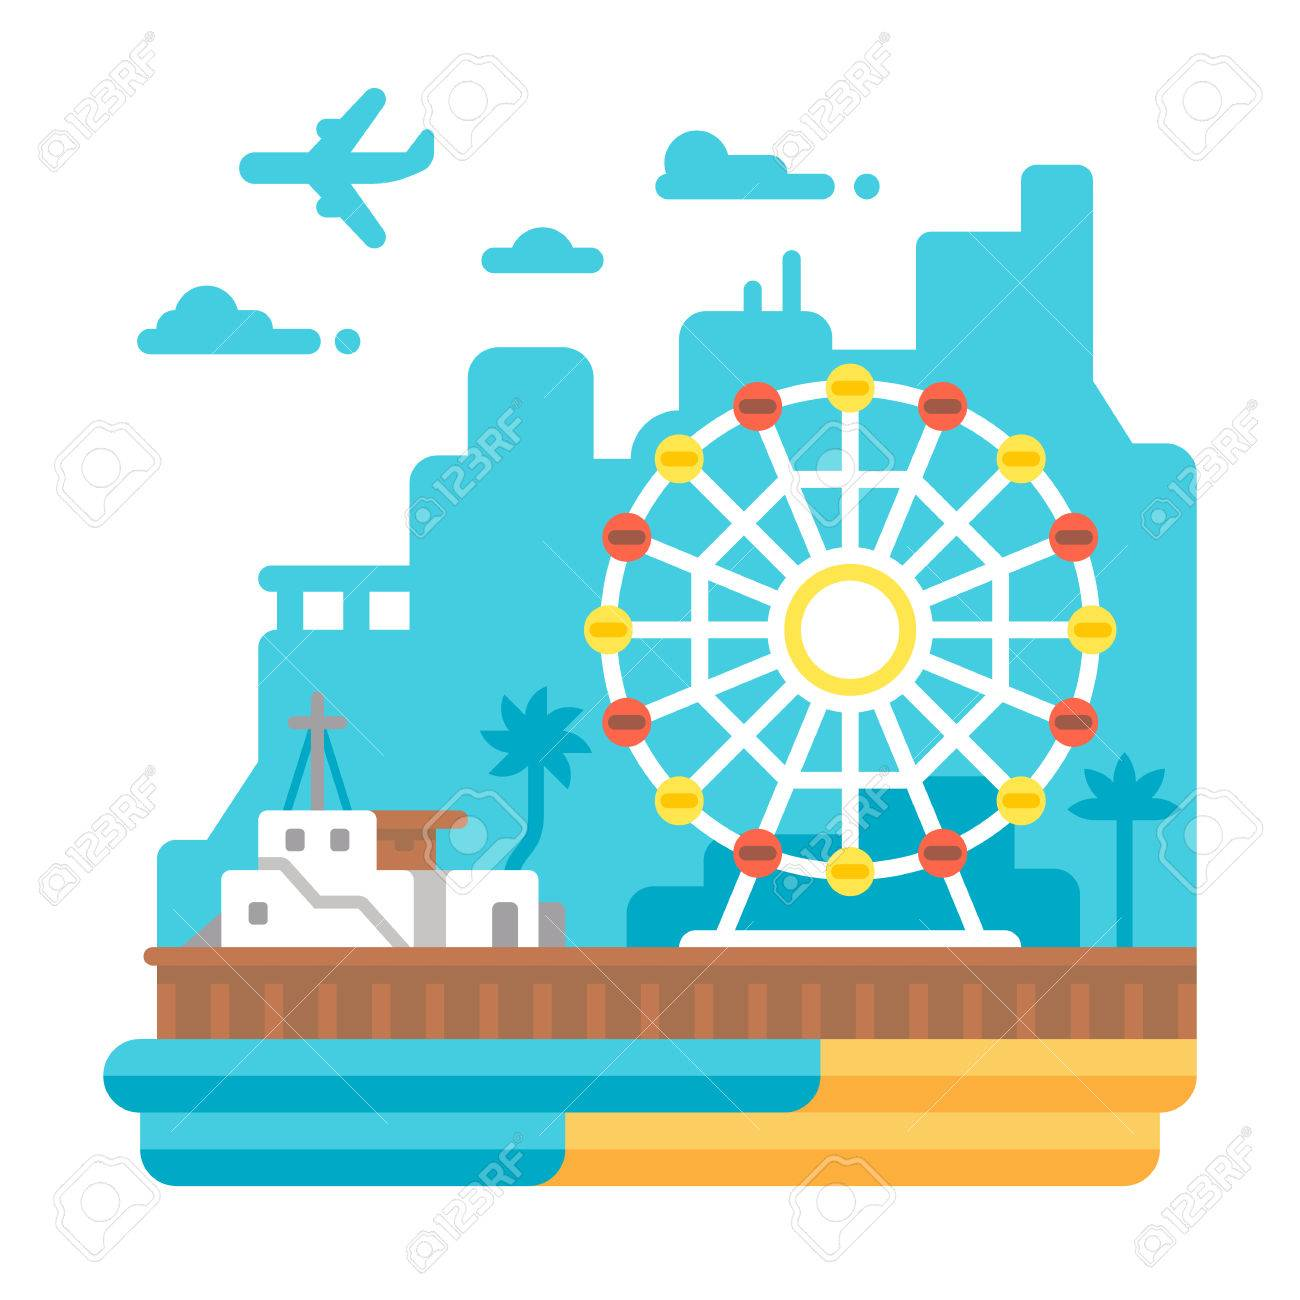 Pier clipart image royalty free stock Pier Clipart vector 1 - 1300 X 1300 Free Clip Art stock ... image royalty free stock